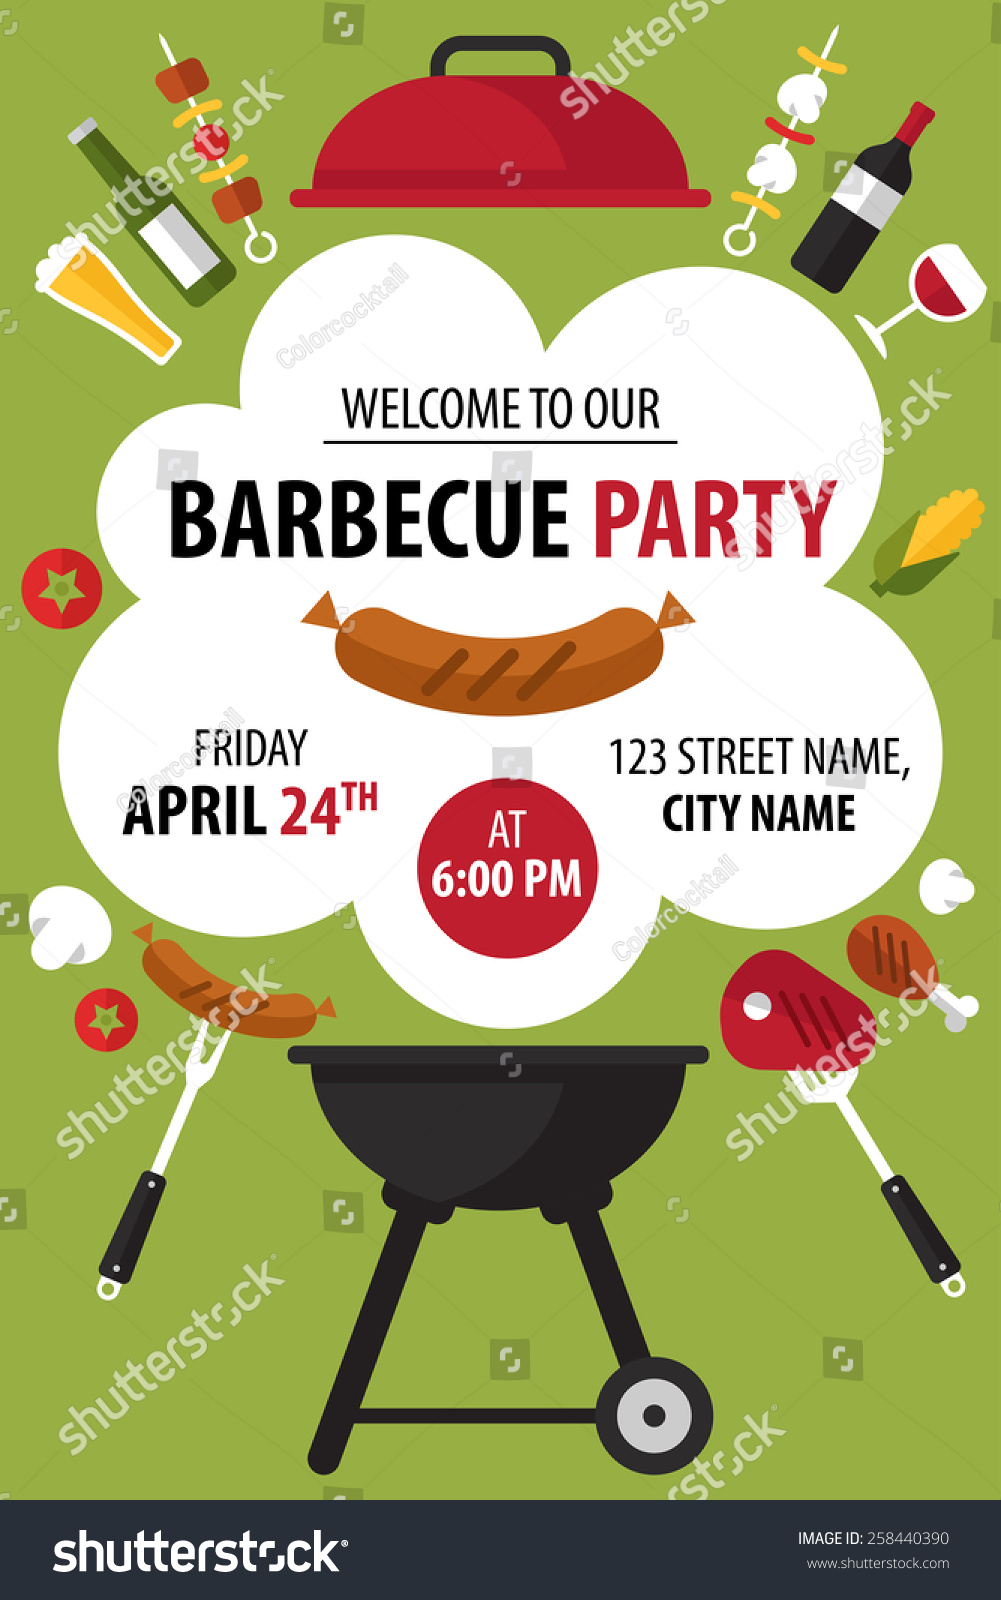 bbq time invitation pictures to pin on   pinsdaddy, party invitations